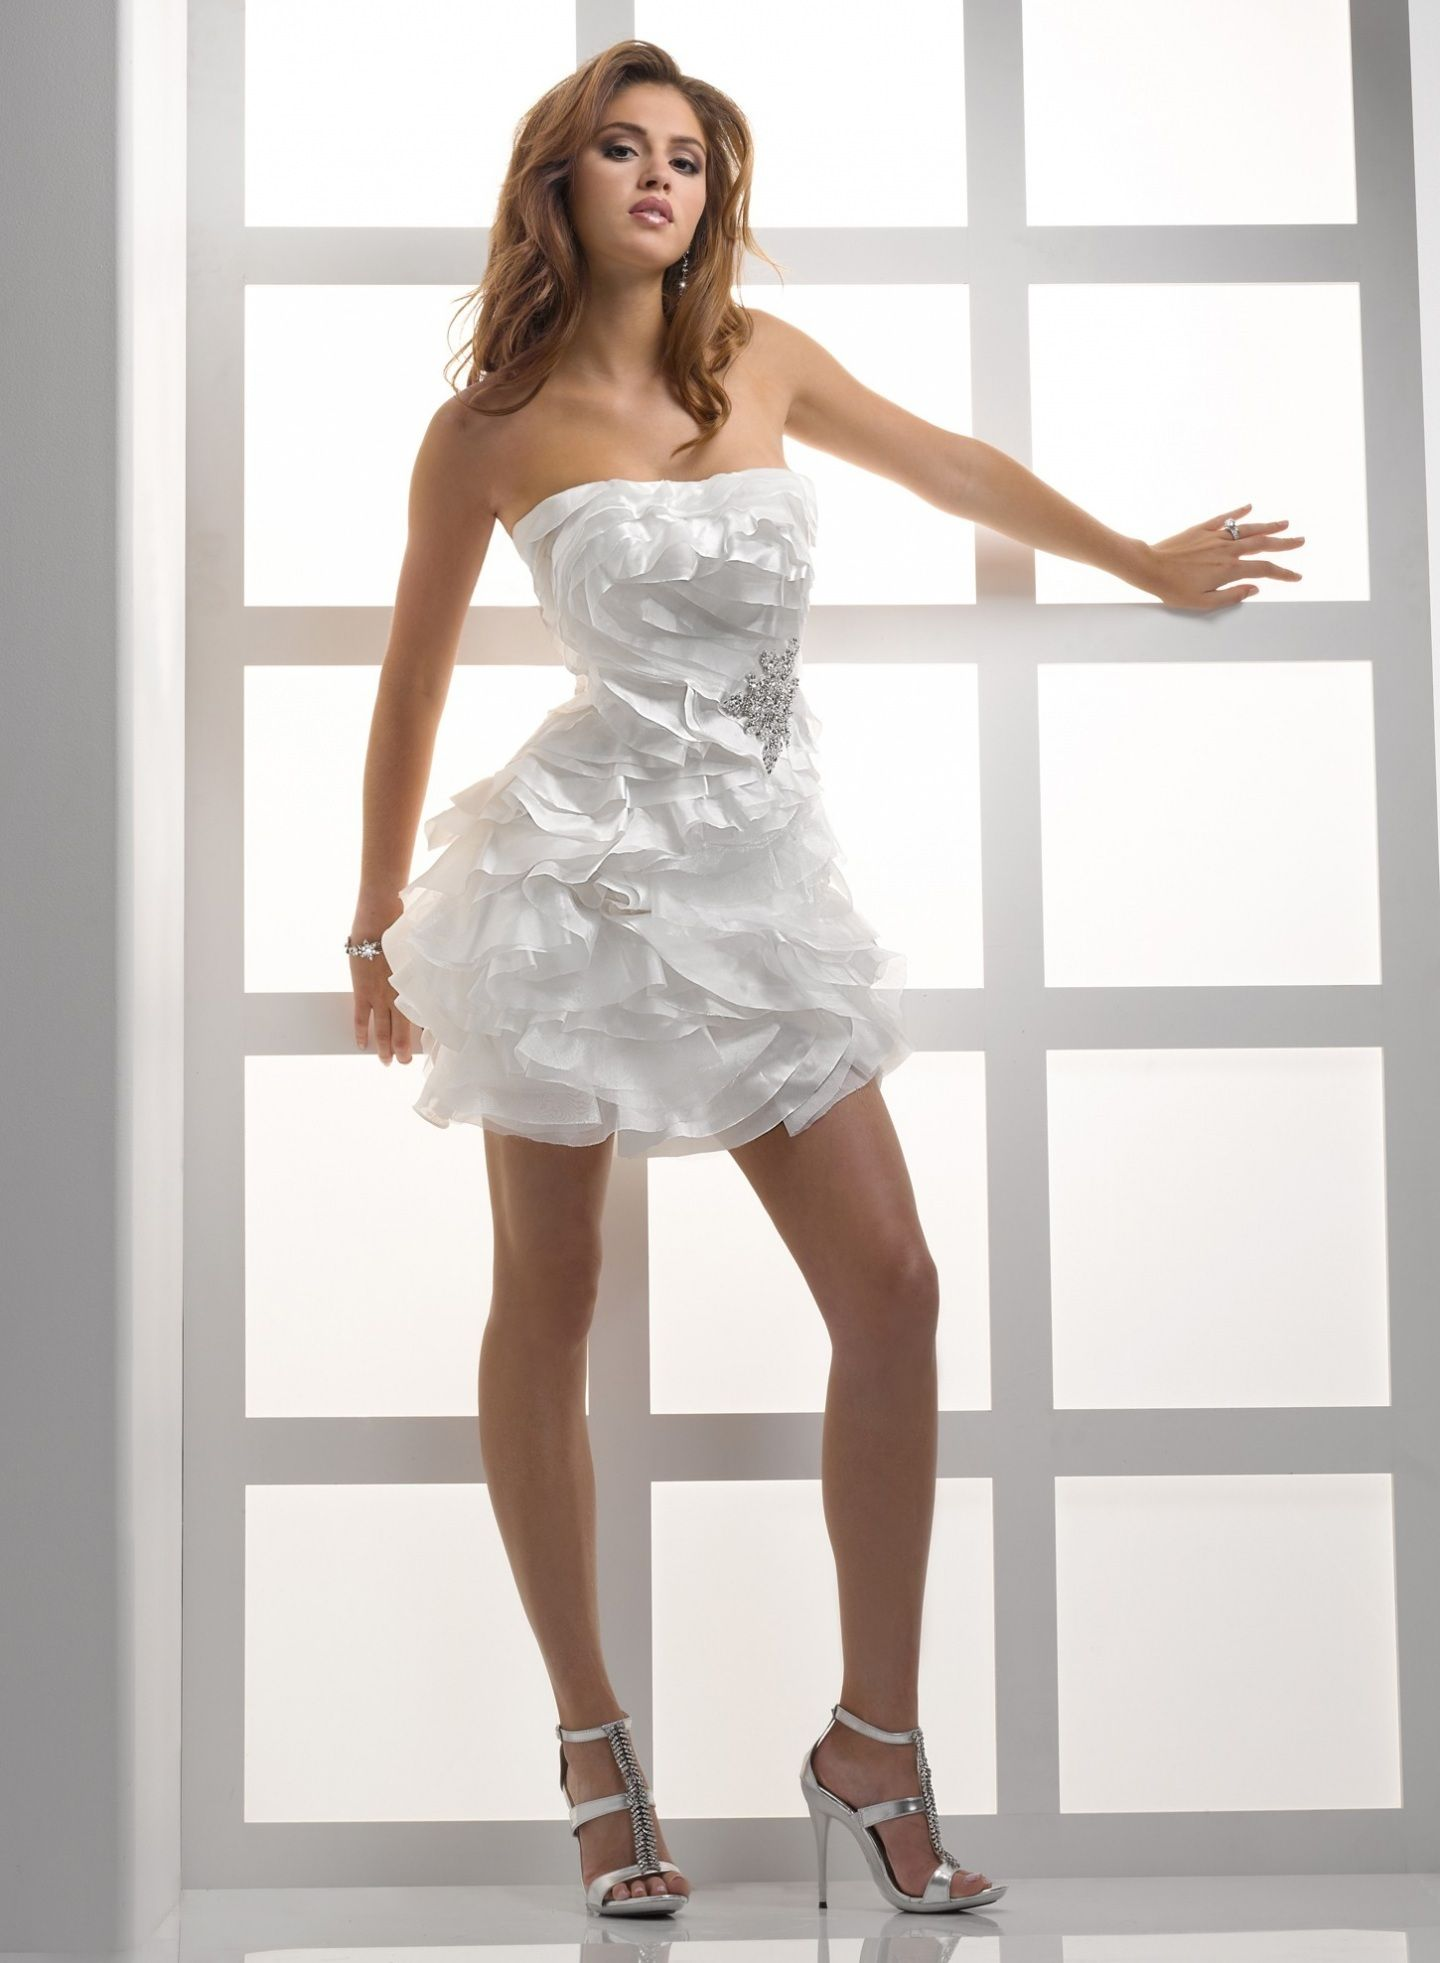 Short Wedding Dresses Uk Hairstyles And Fashion For